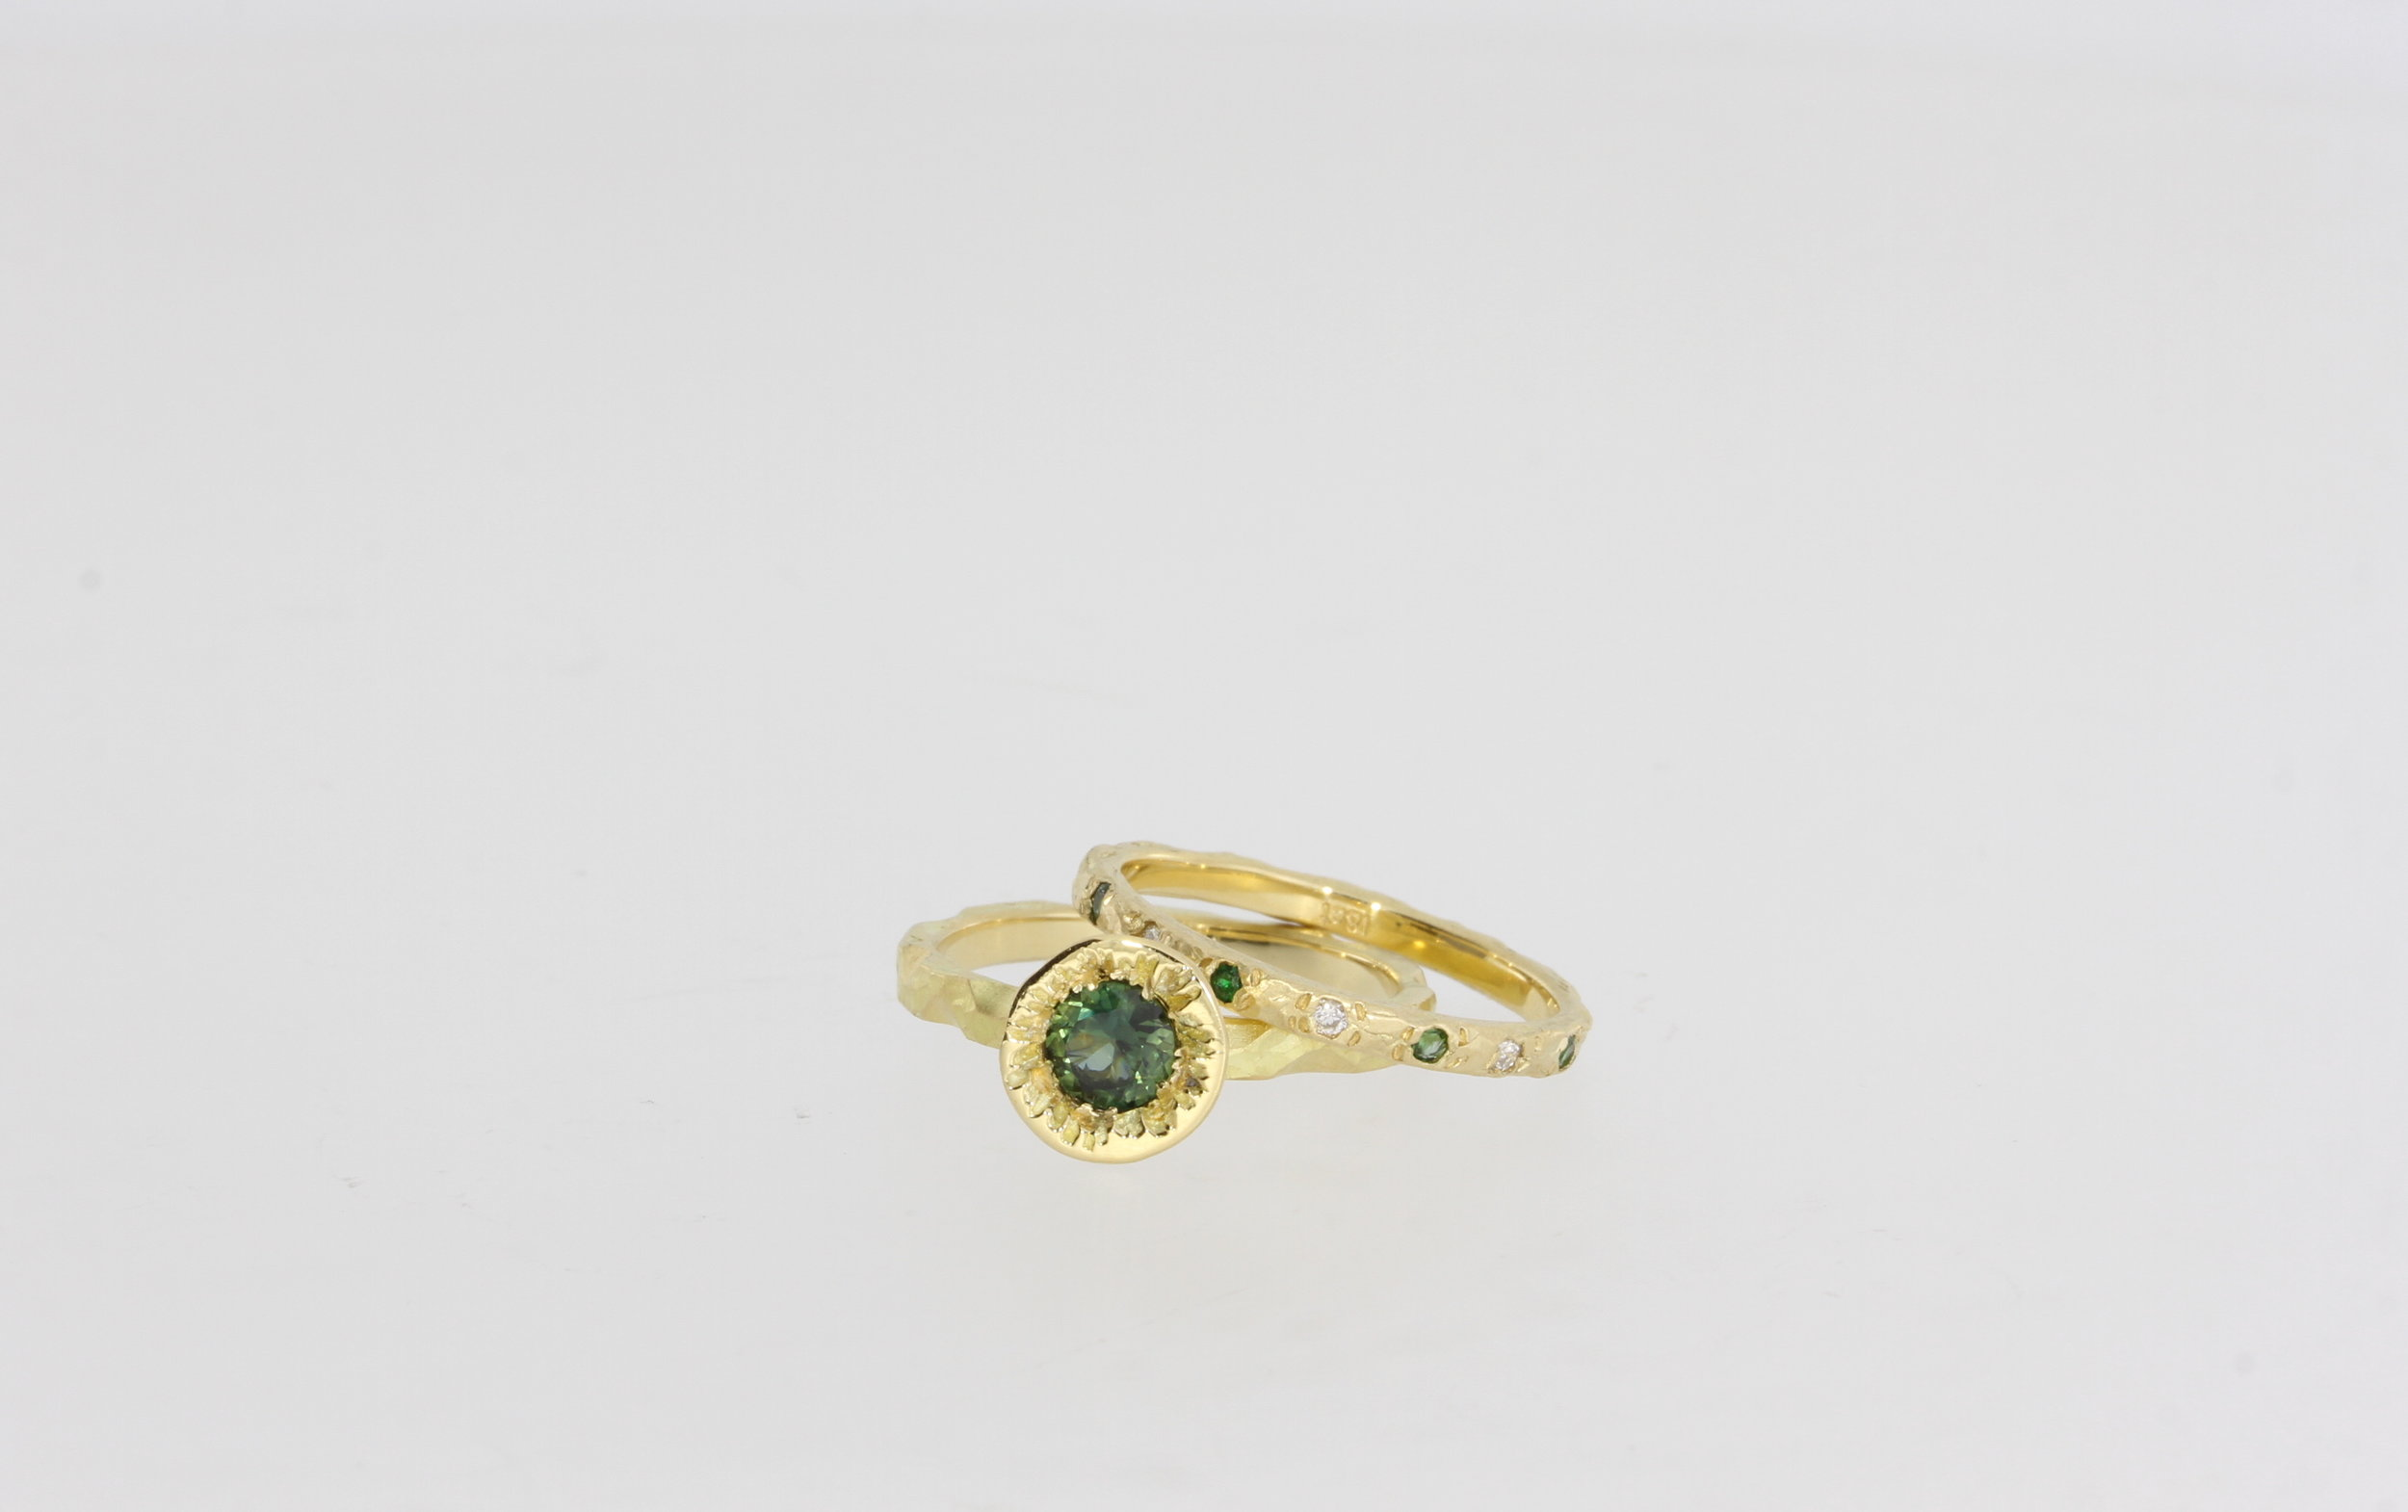 Payet 18ct yellow gold ring set with green sapphire diamonds & tourmalines.jpg